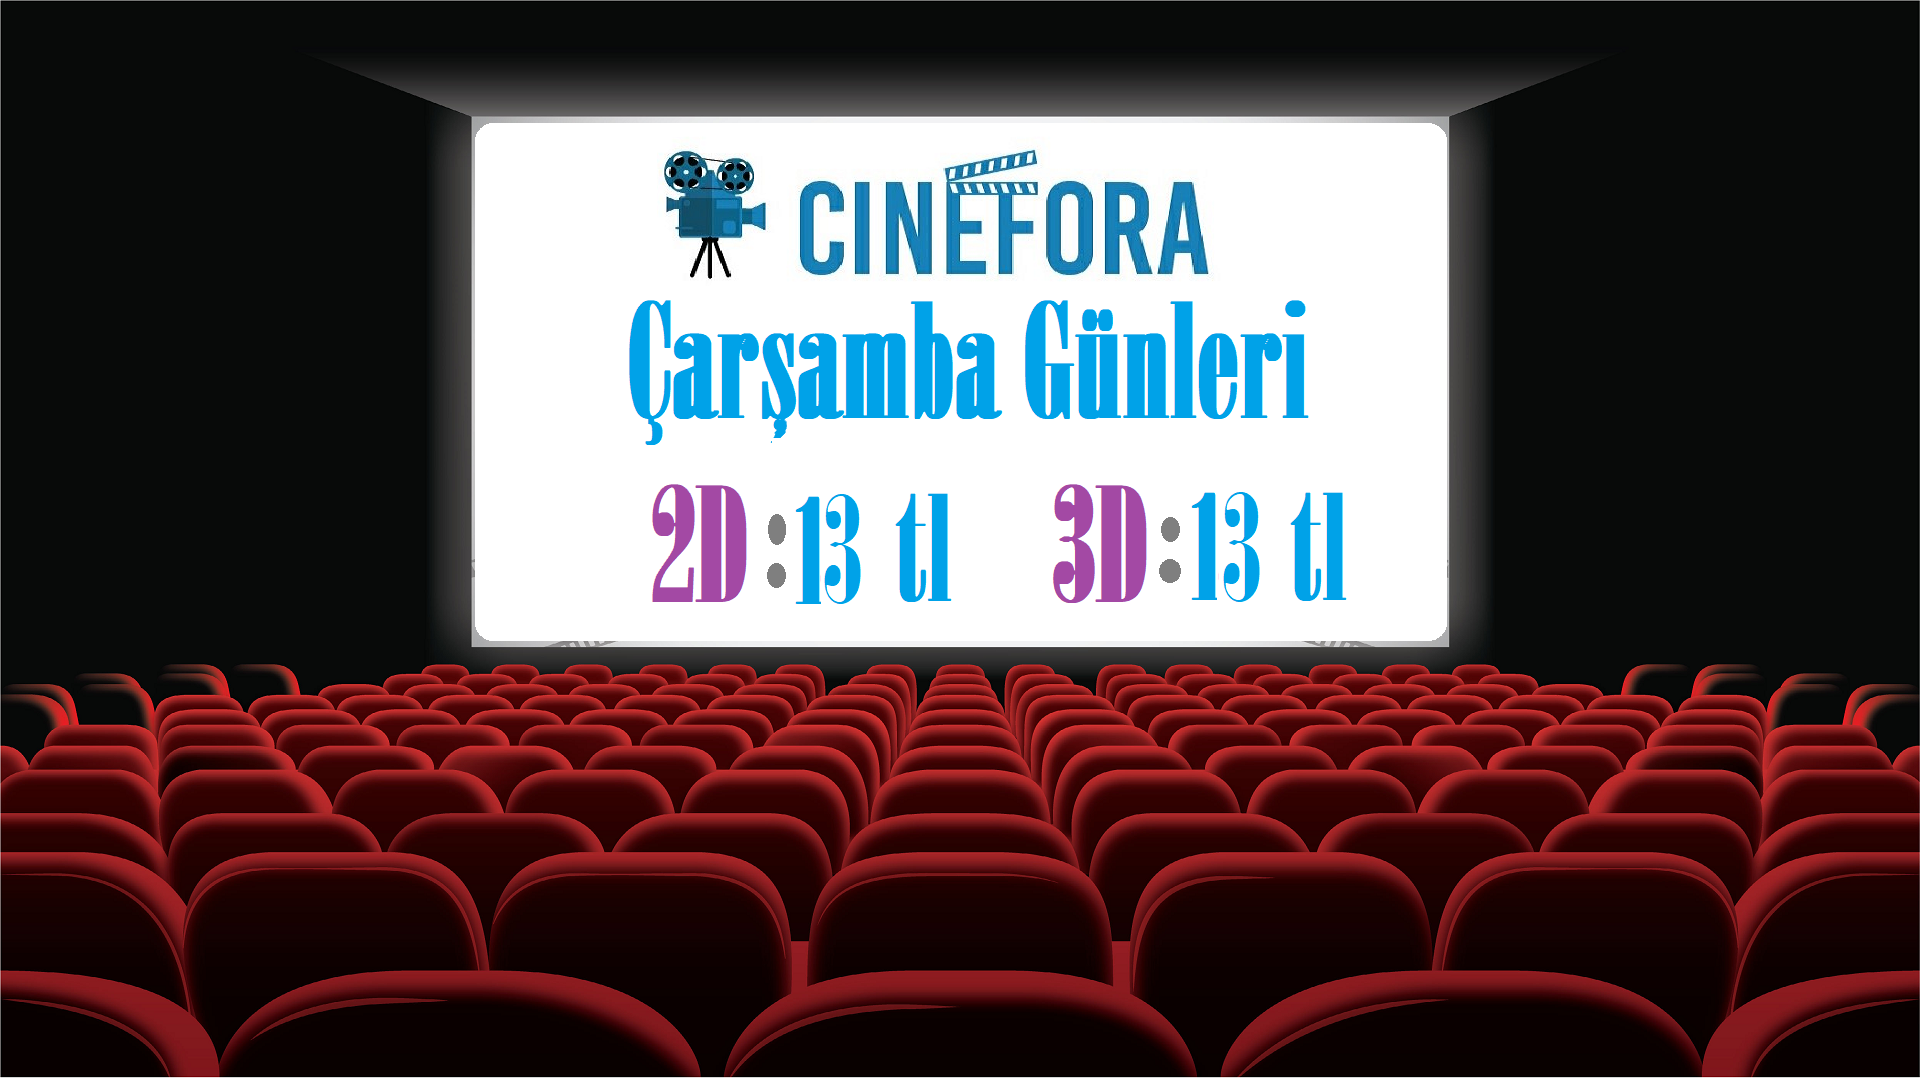 CINEFORA SİNEMA